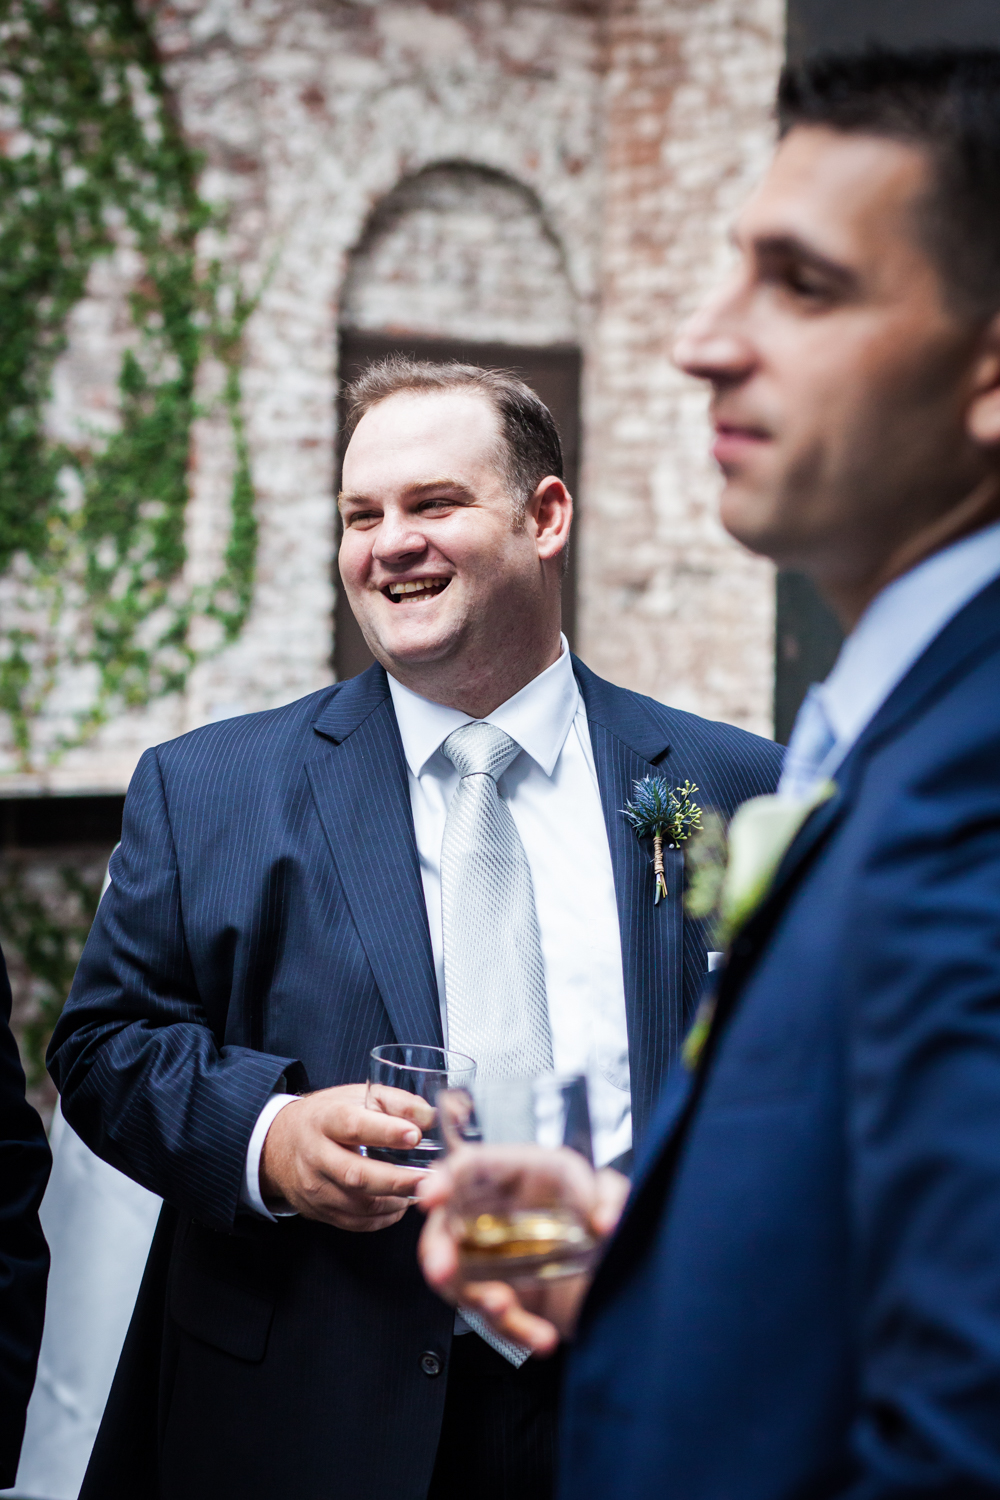 Groomsmen talking with other groomsmen and holding glass of scotch